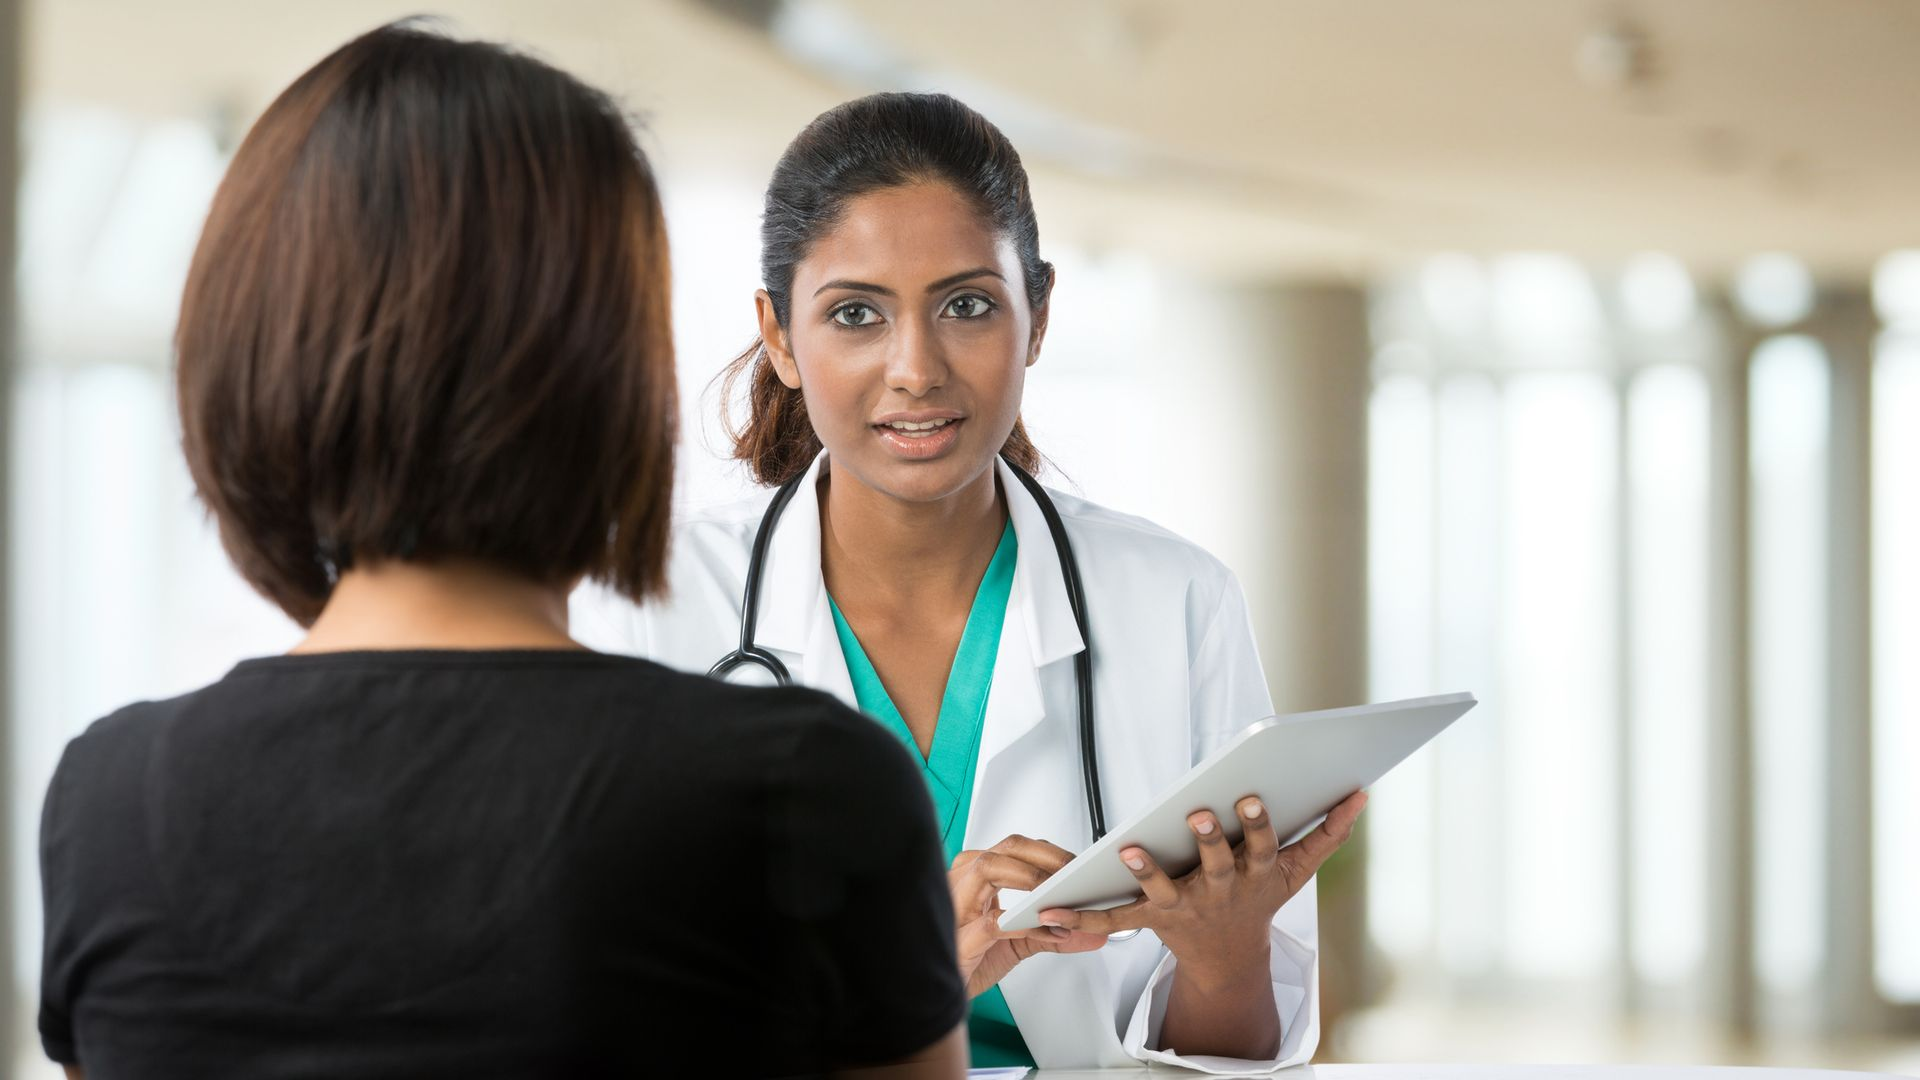 Female Doctors Have Better Outcomes With Female Patients